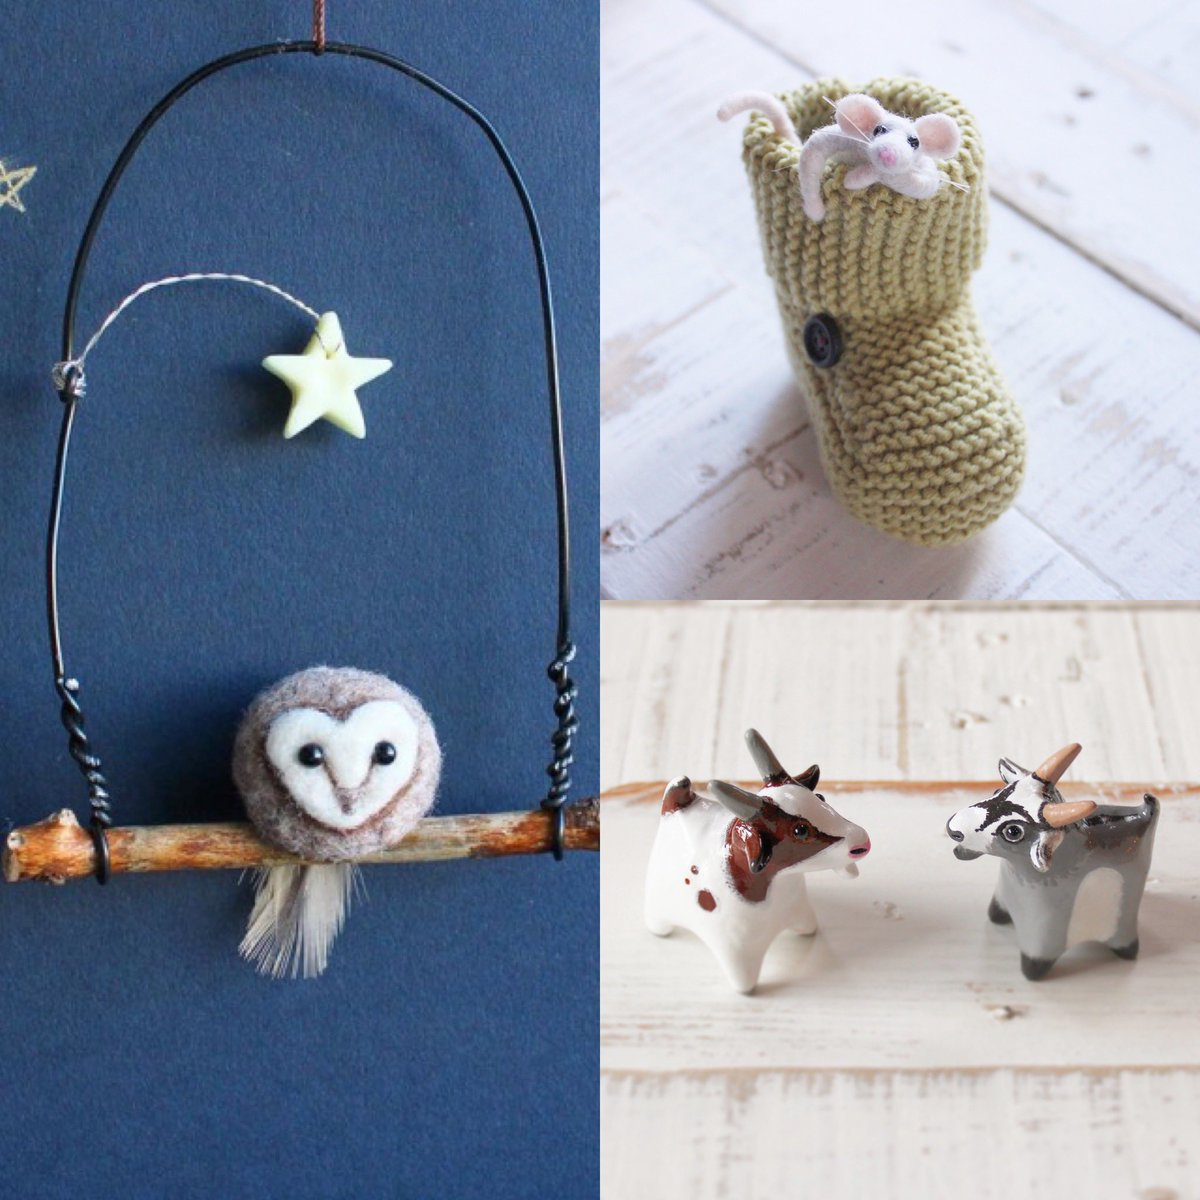 The owls are back and just in time for Mothers Day 👏   #mothersday #owl #goat #mouse #knitting #needlefelt #polymerclay #handmade #giftideas #scotland #travel #adventure #unique #gifts #mum #mother #love #family #motheringsunday #cute #happy #art #craft